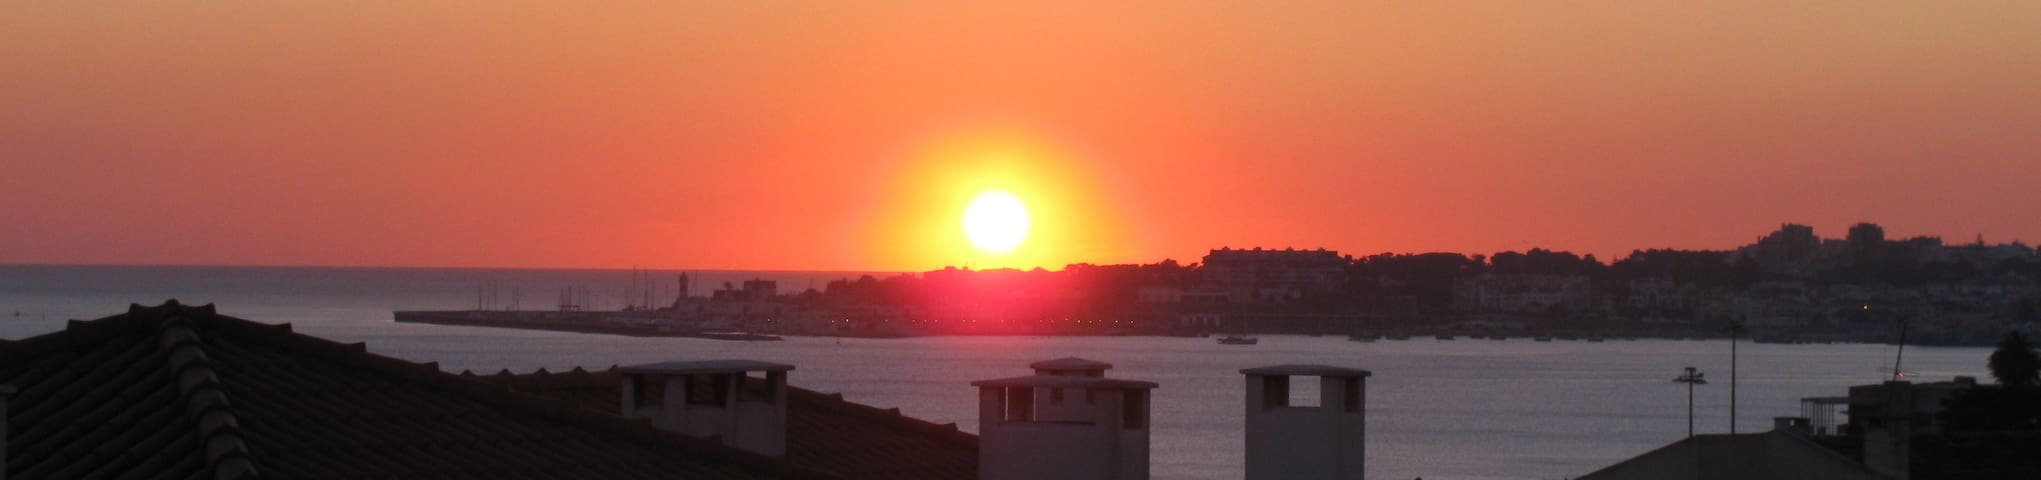 Cascais Bay View - Watch the Sunset Every Evening from your Window with a Glass of Portuguese Wine...